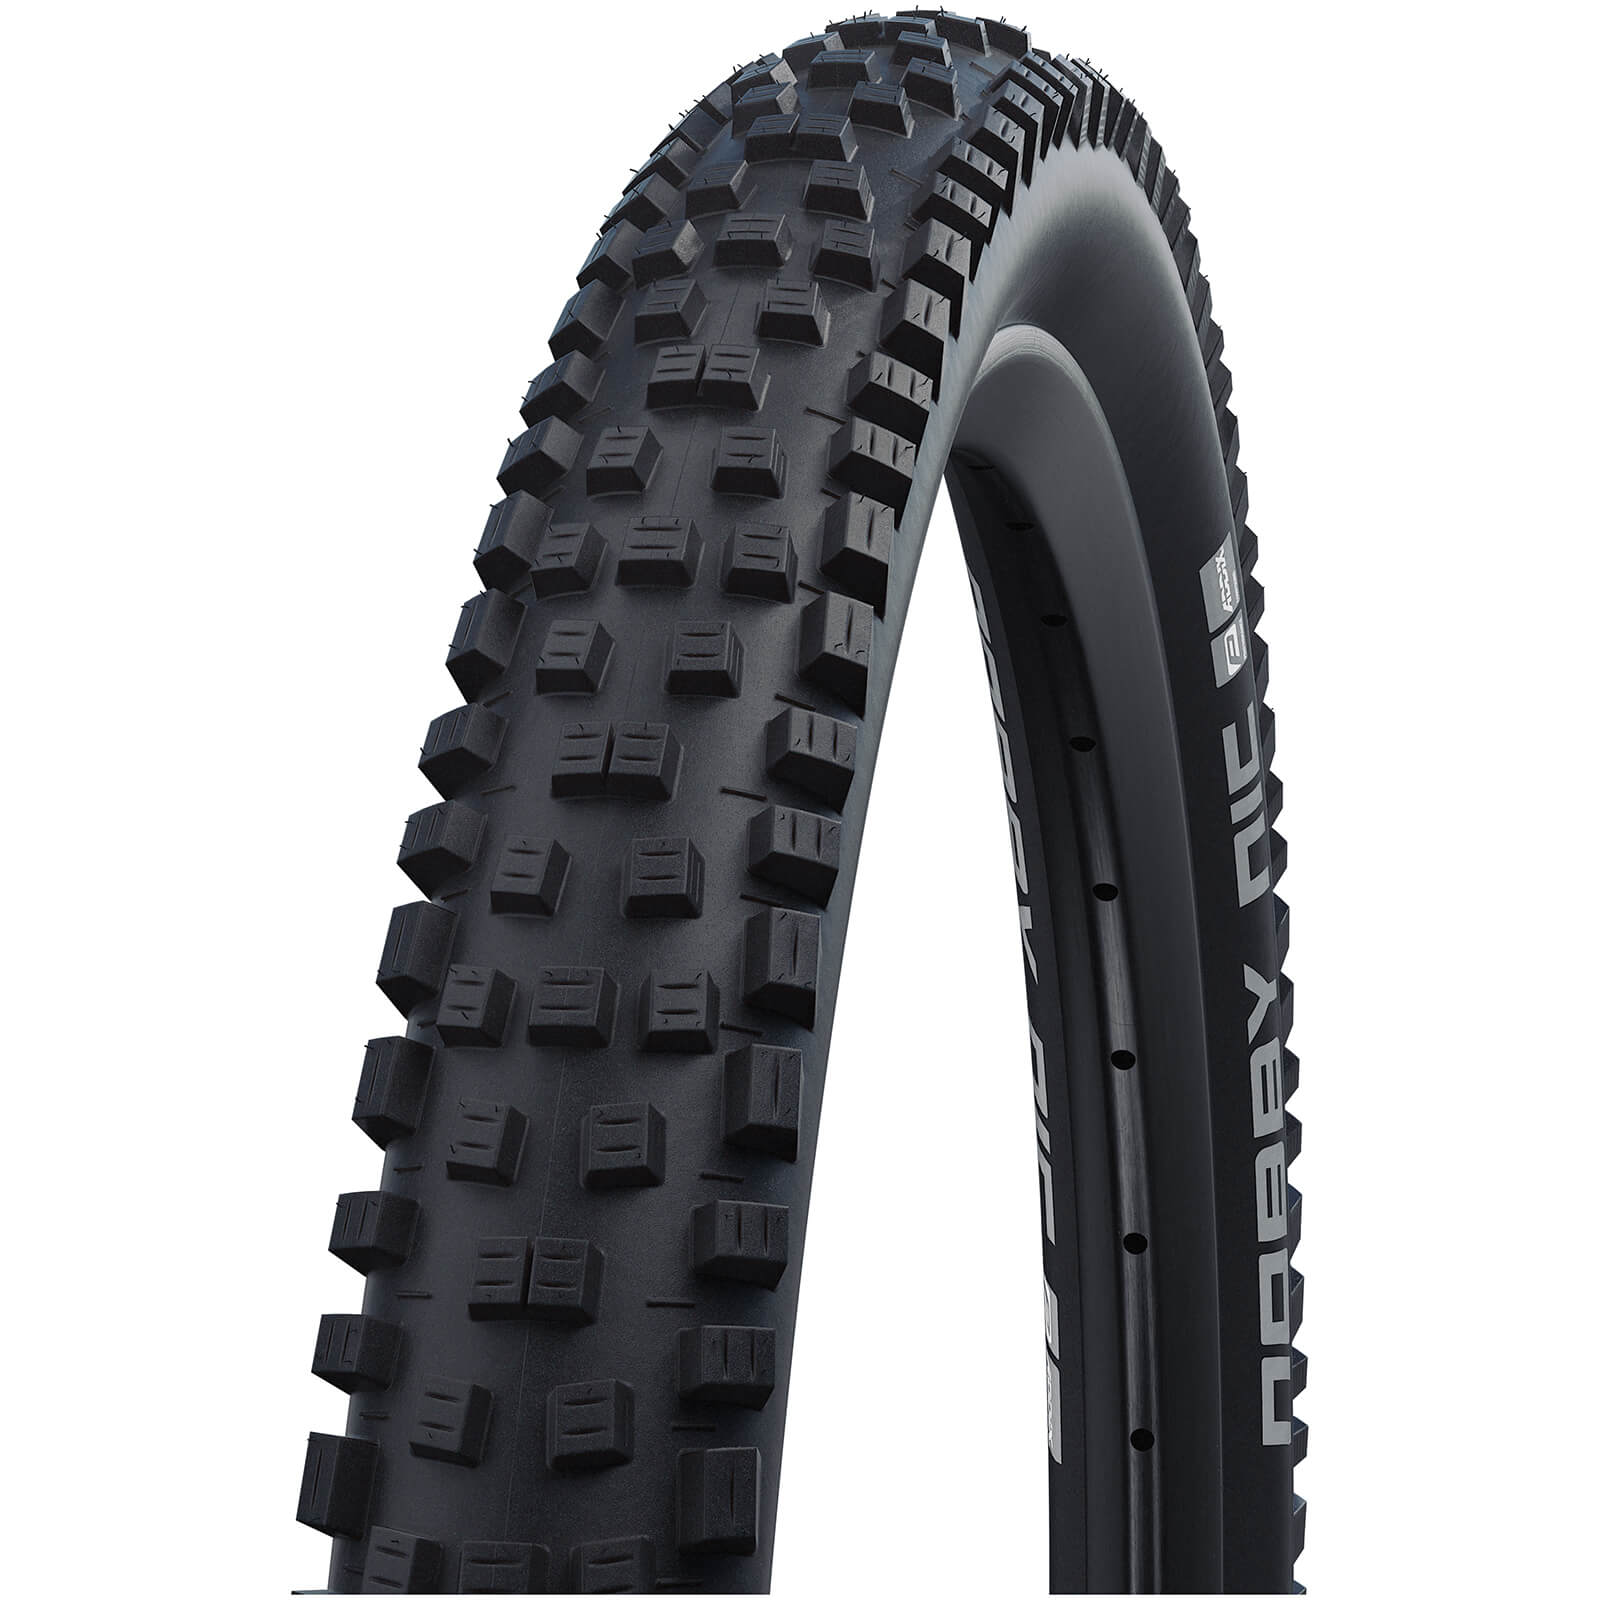 Schwalbe Nobby Nic Performance DD RaceGuard Tubeless MTB Tyre - Black - 26in x 2.35in